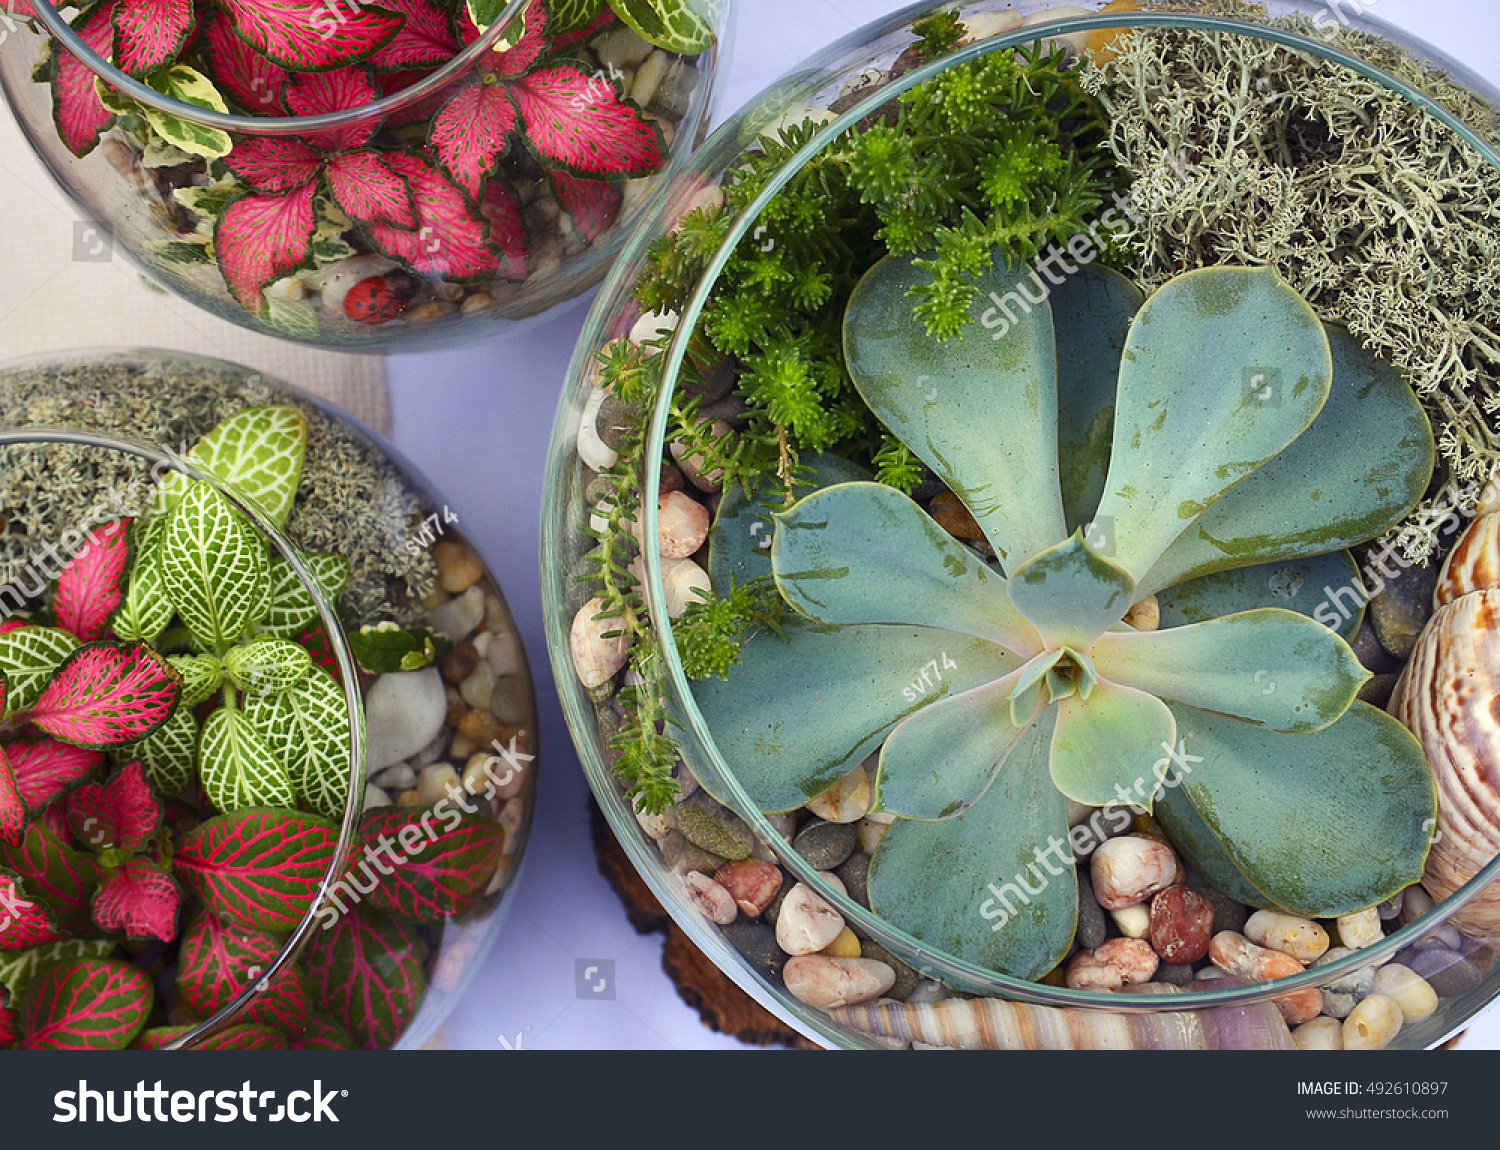 Decorative glass vases with succulent and cactus plants glass interior terrarium with succulents and cactuses